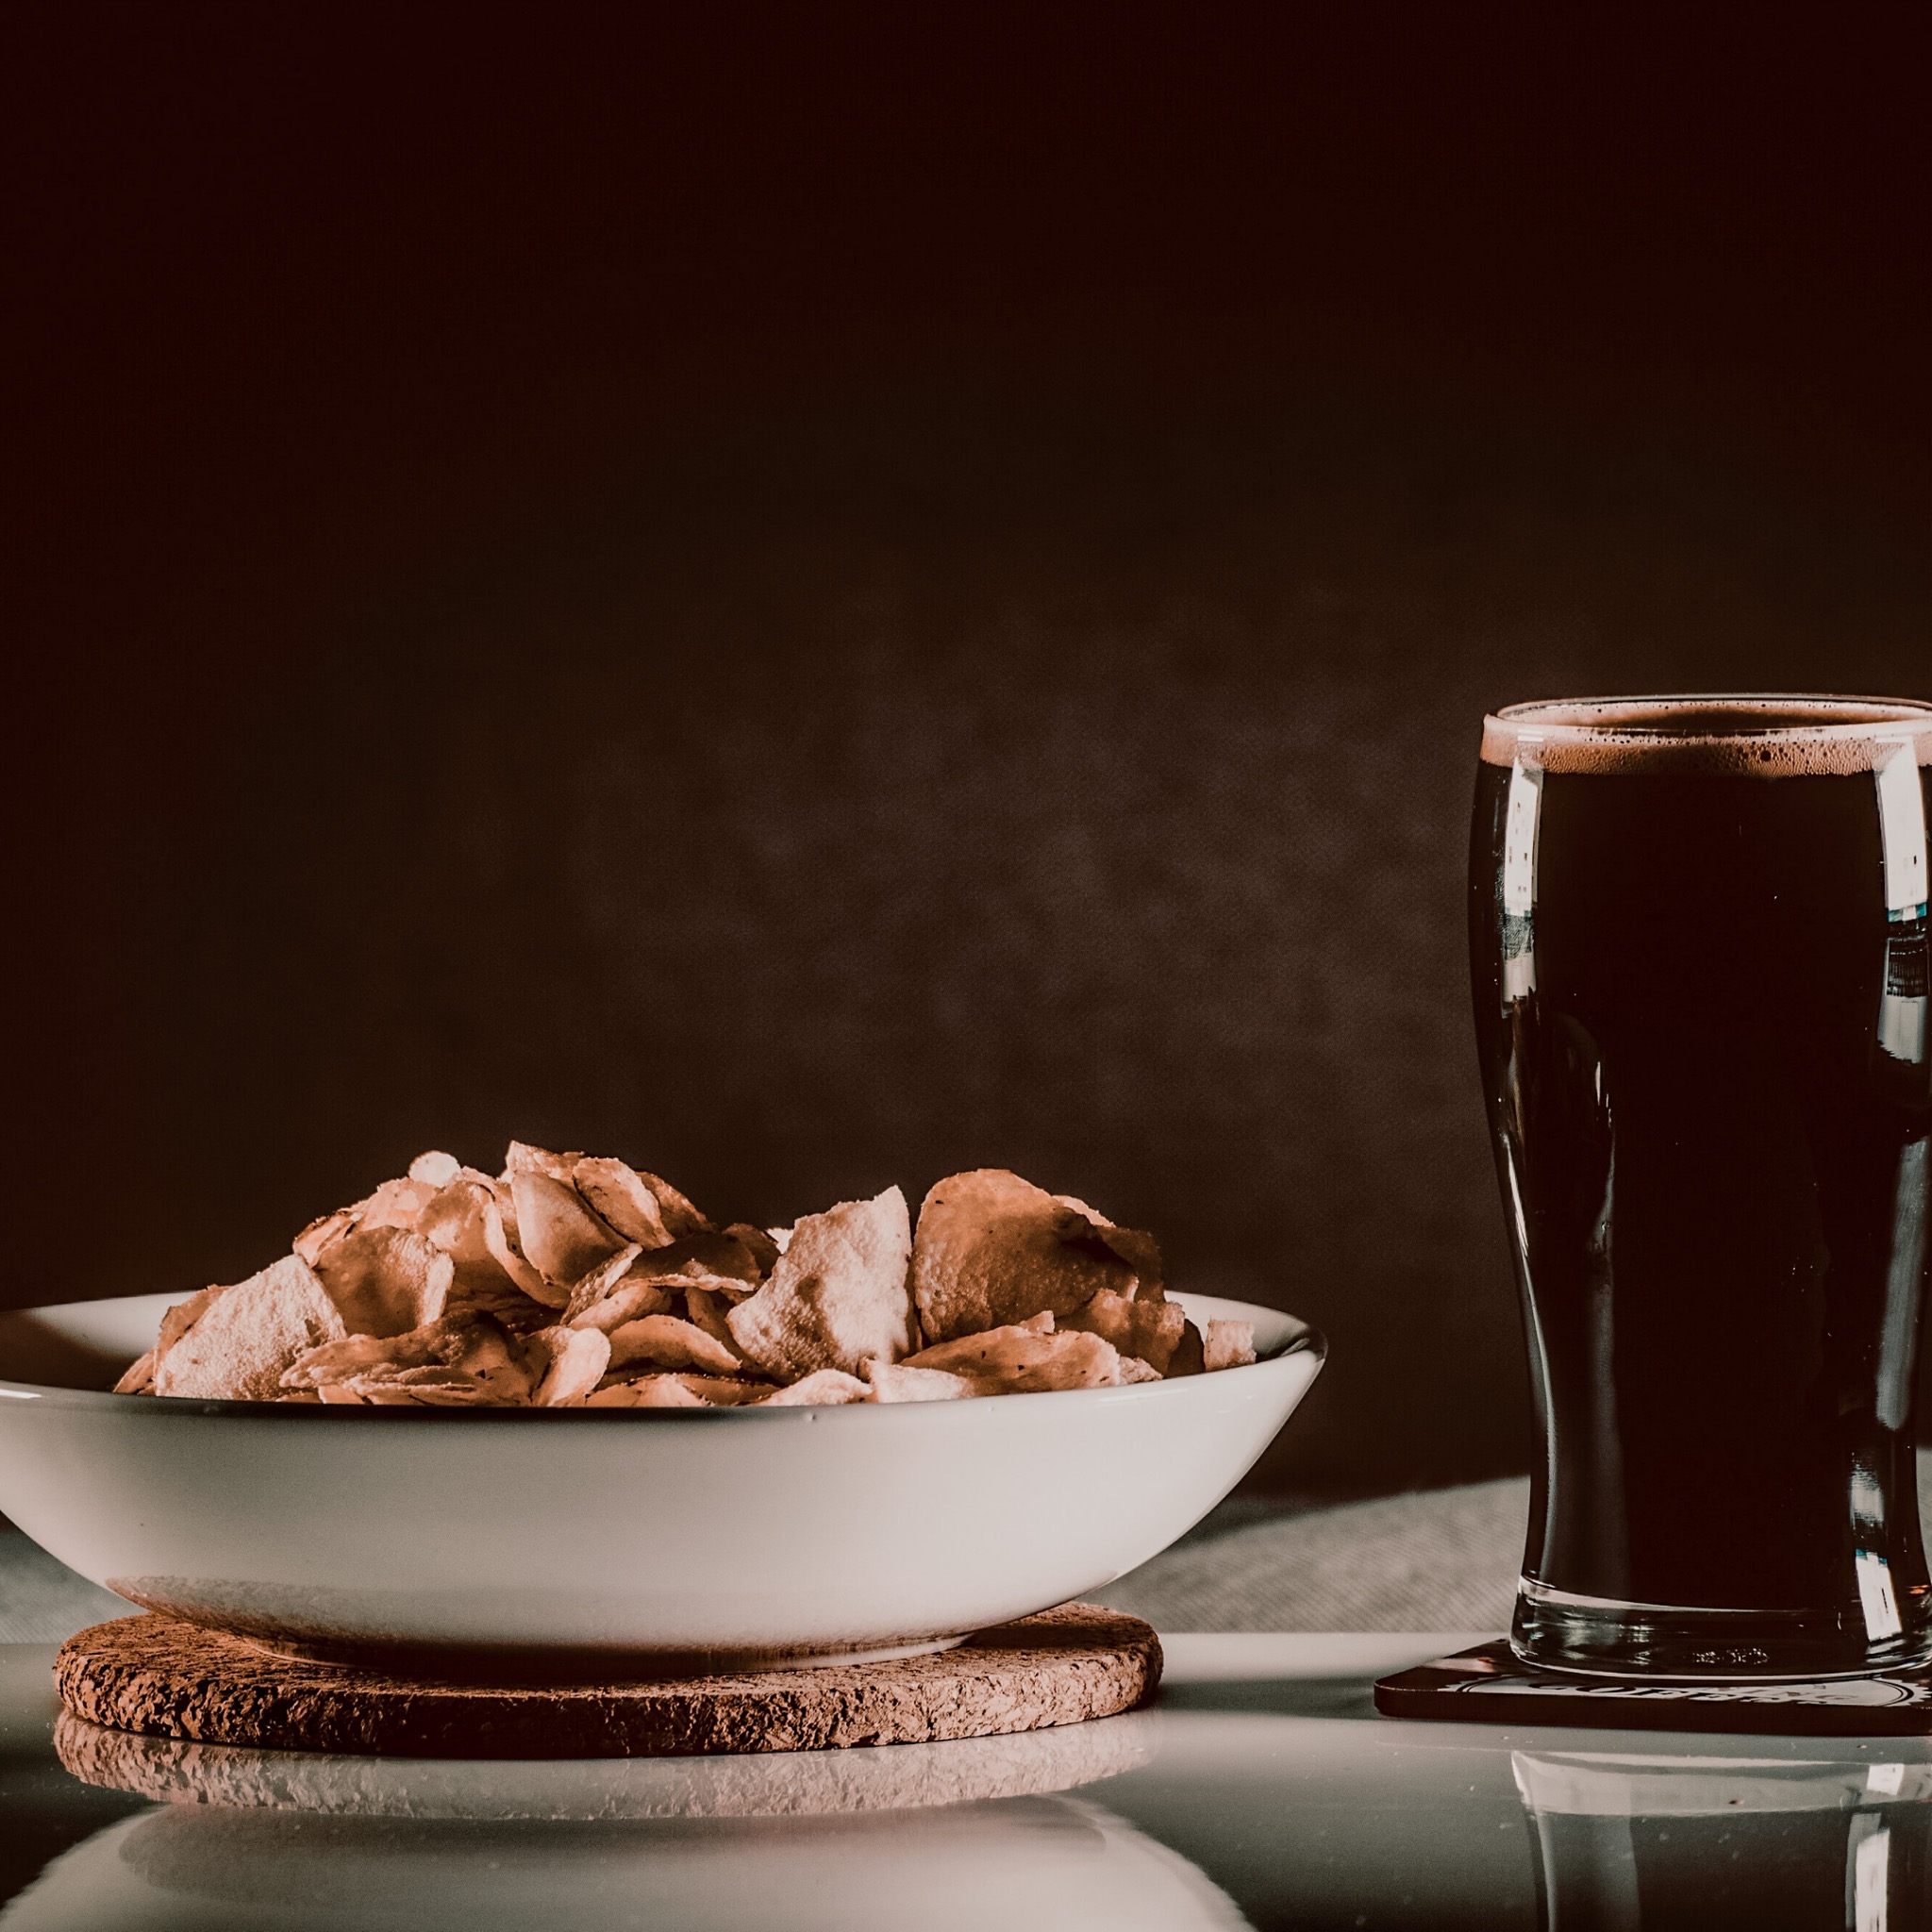 crisps in a bowl and a pint glass of beer